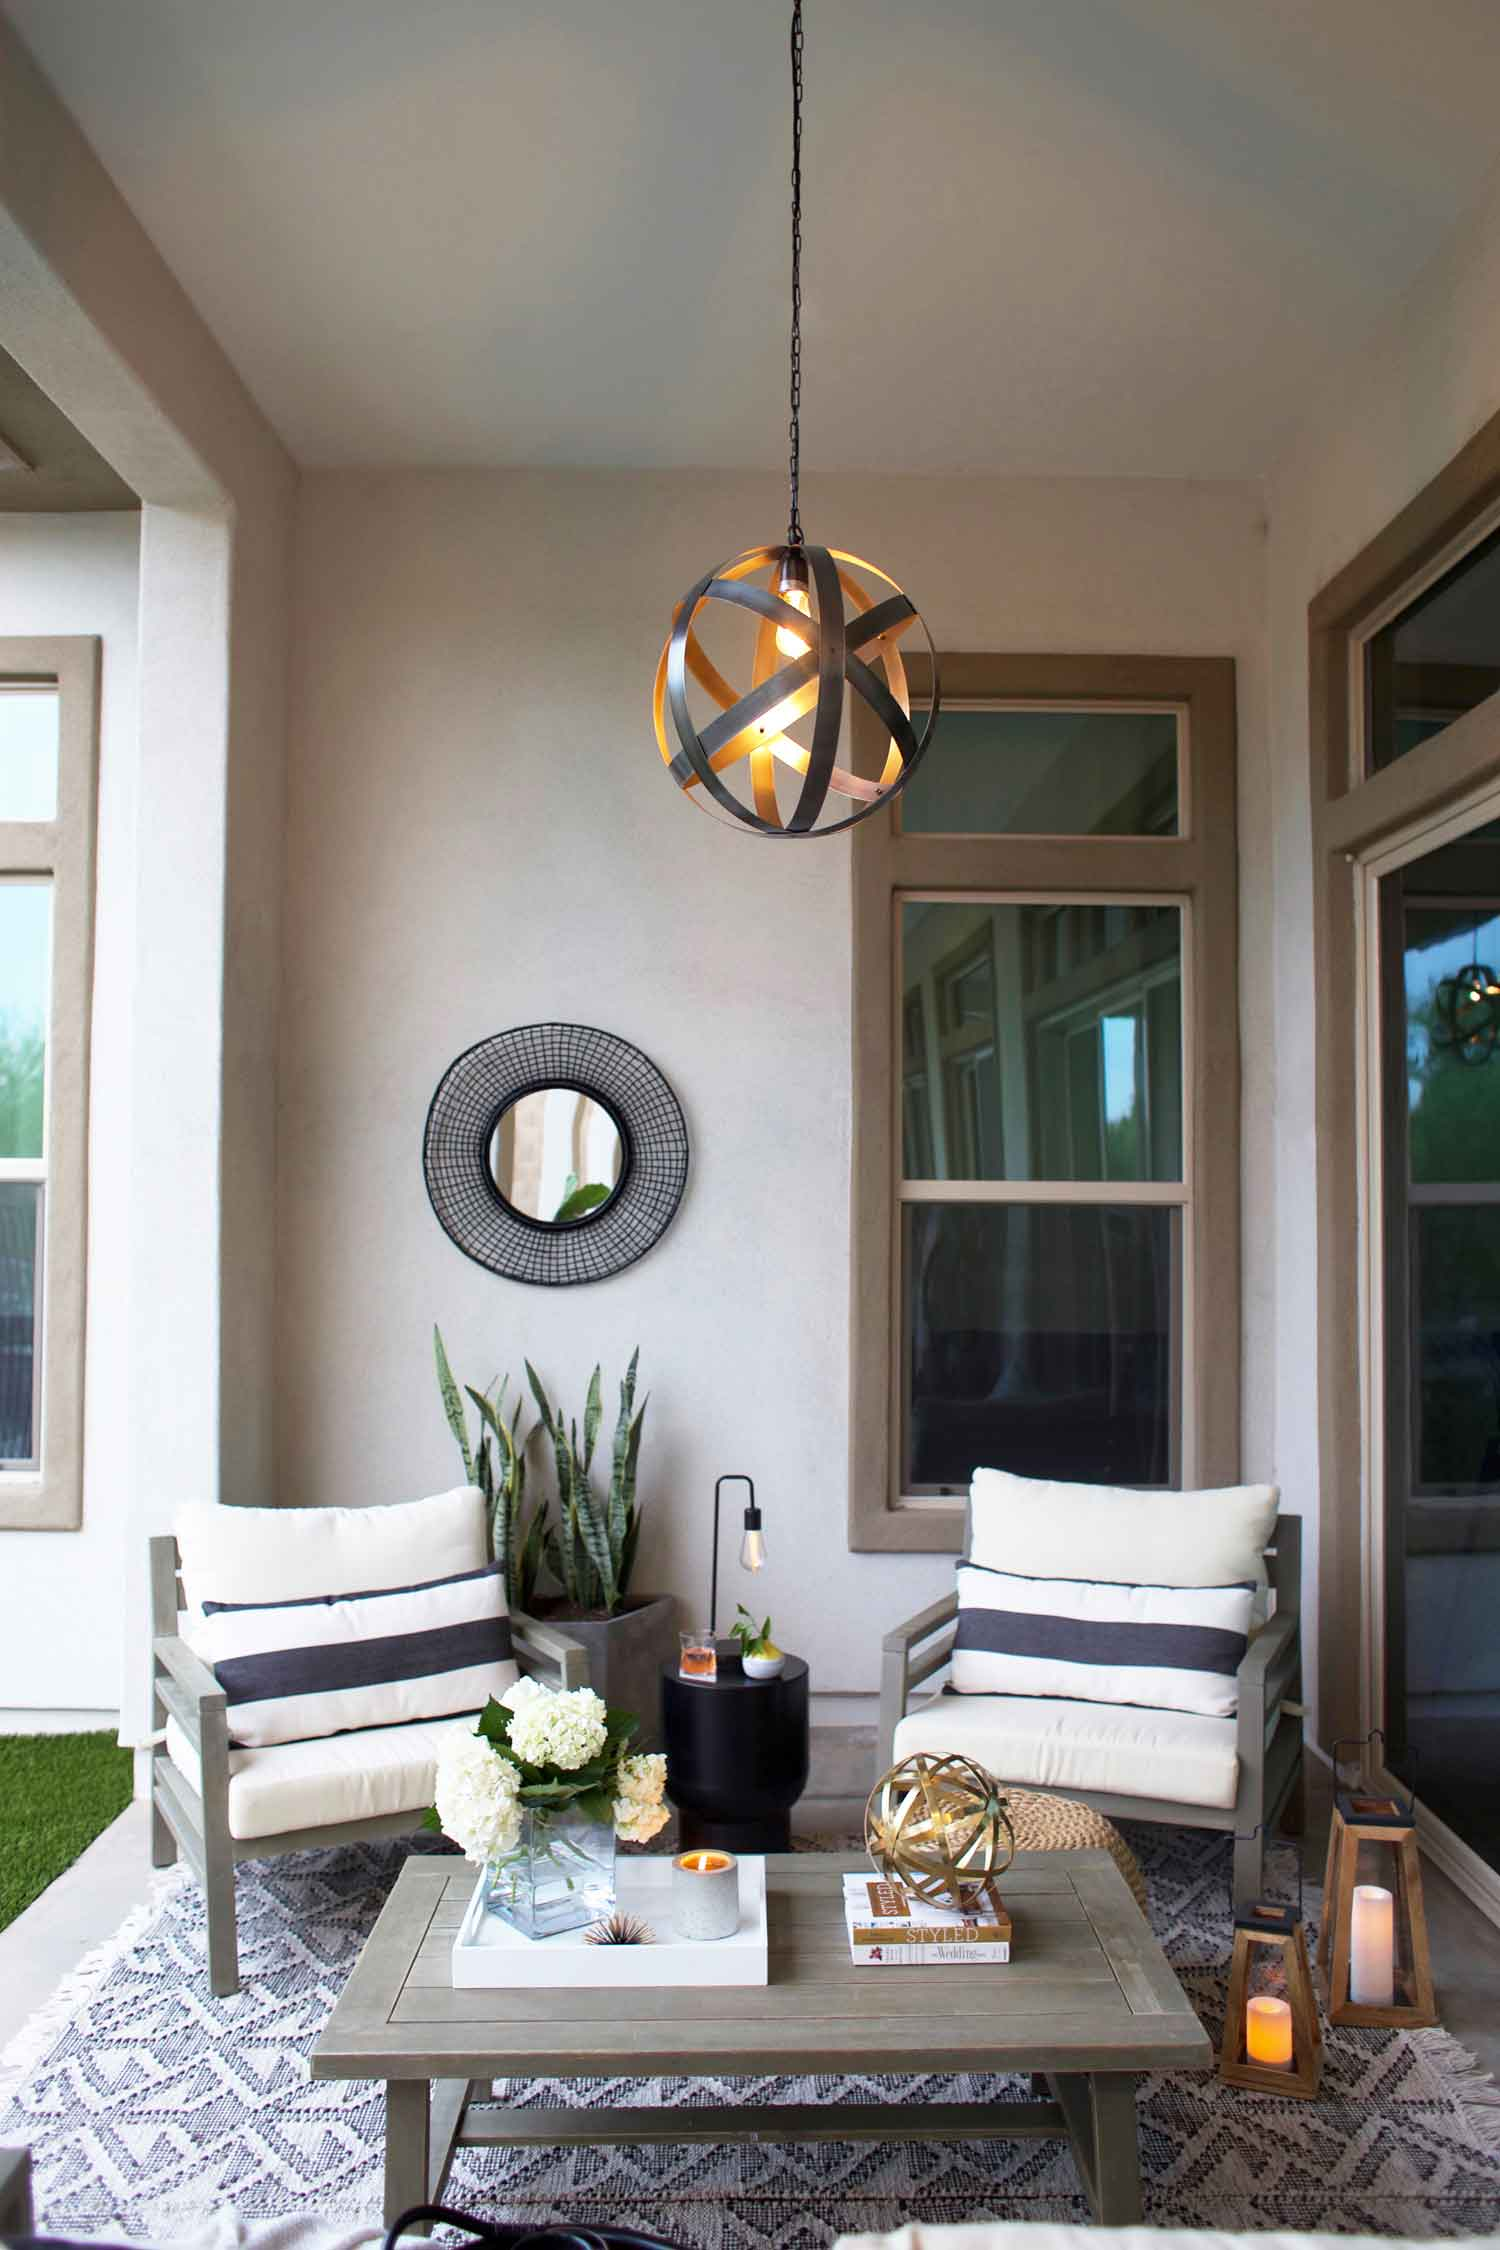 This modern farmhouse patio space is a perfect example of how to maximize a small space